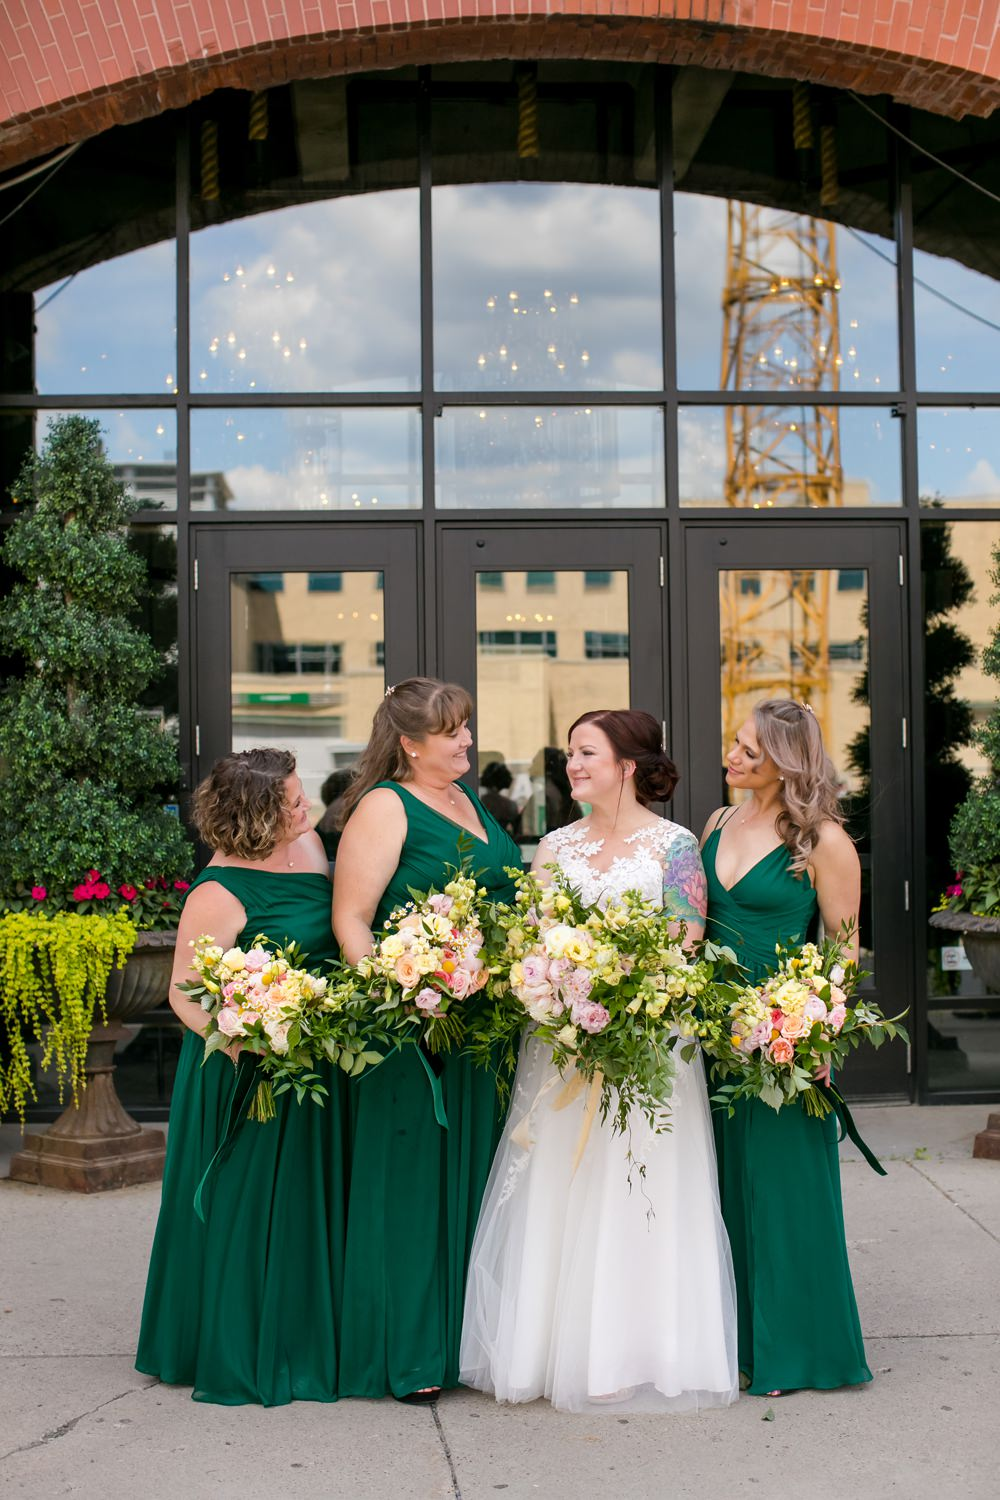 Bridesmaids Bridesmaid Dress Dresses Green Floral Minneapolis Wedding Jeannine Marie Photography